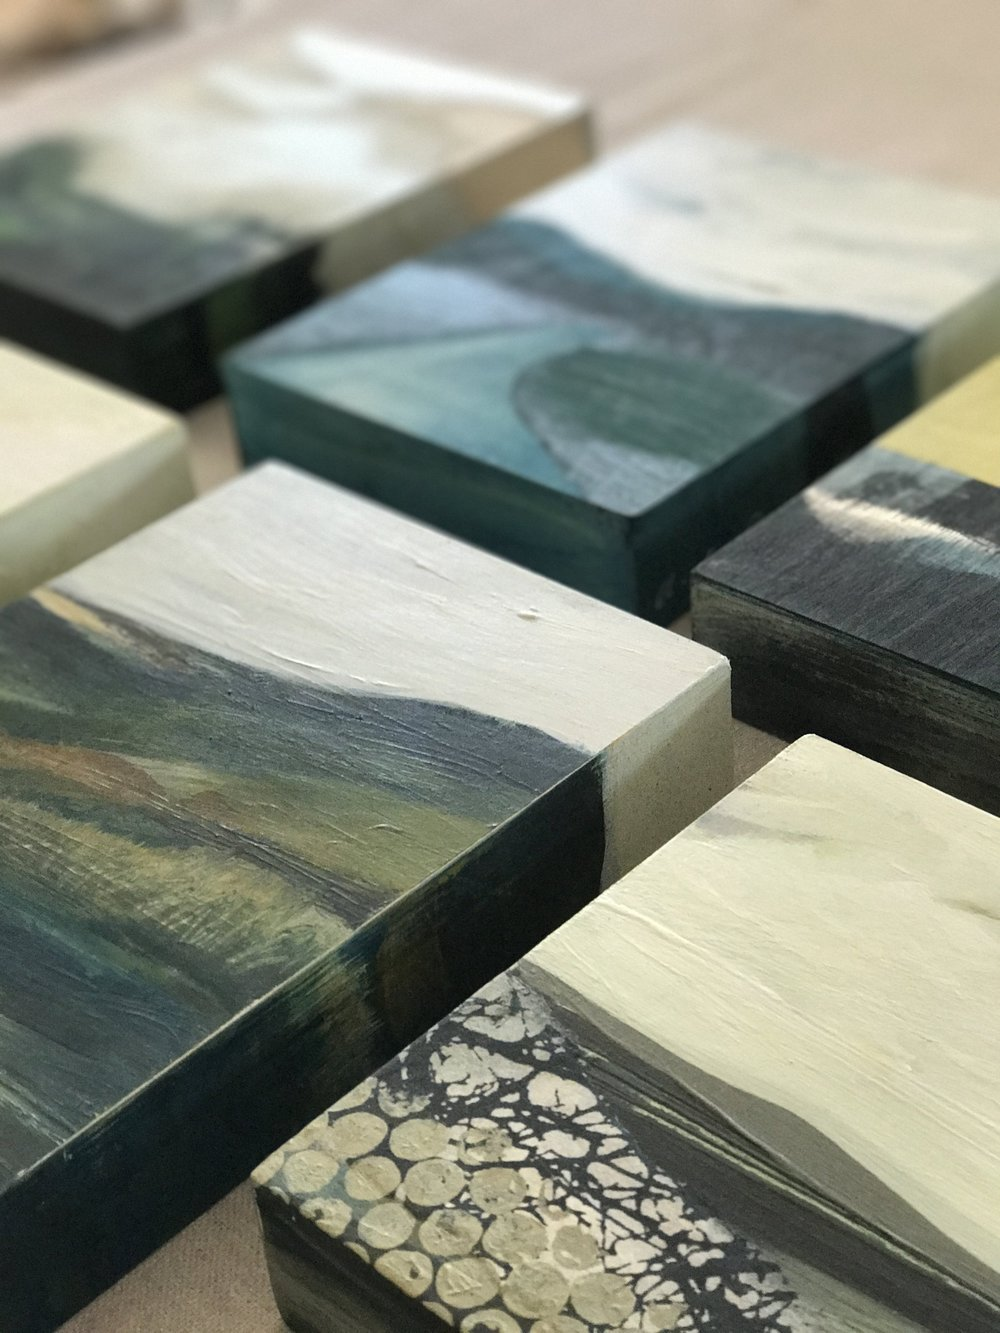 "A collection of paintings on wood. Explorations of abstract ideas and landscape compositions. Small but mighty. Purchase one or a collection to hang together or place on a mantle with some of your favorite things.  Details: 6"" x 8"" X 1.5""  click on the image to see full view."